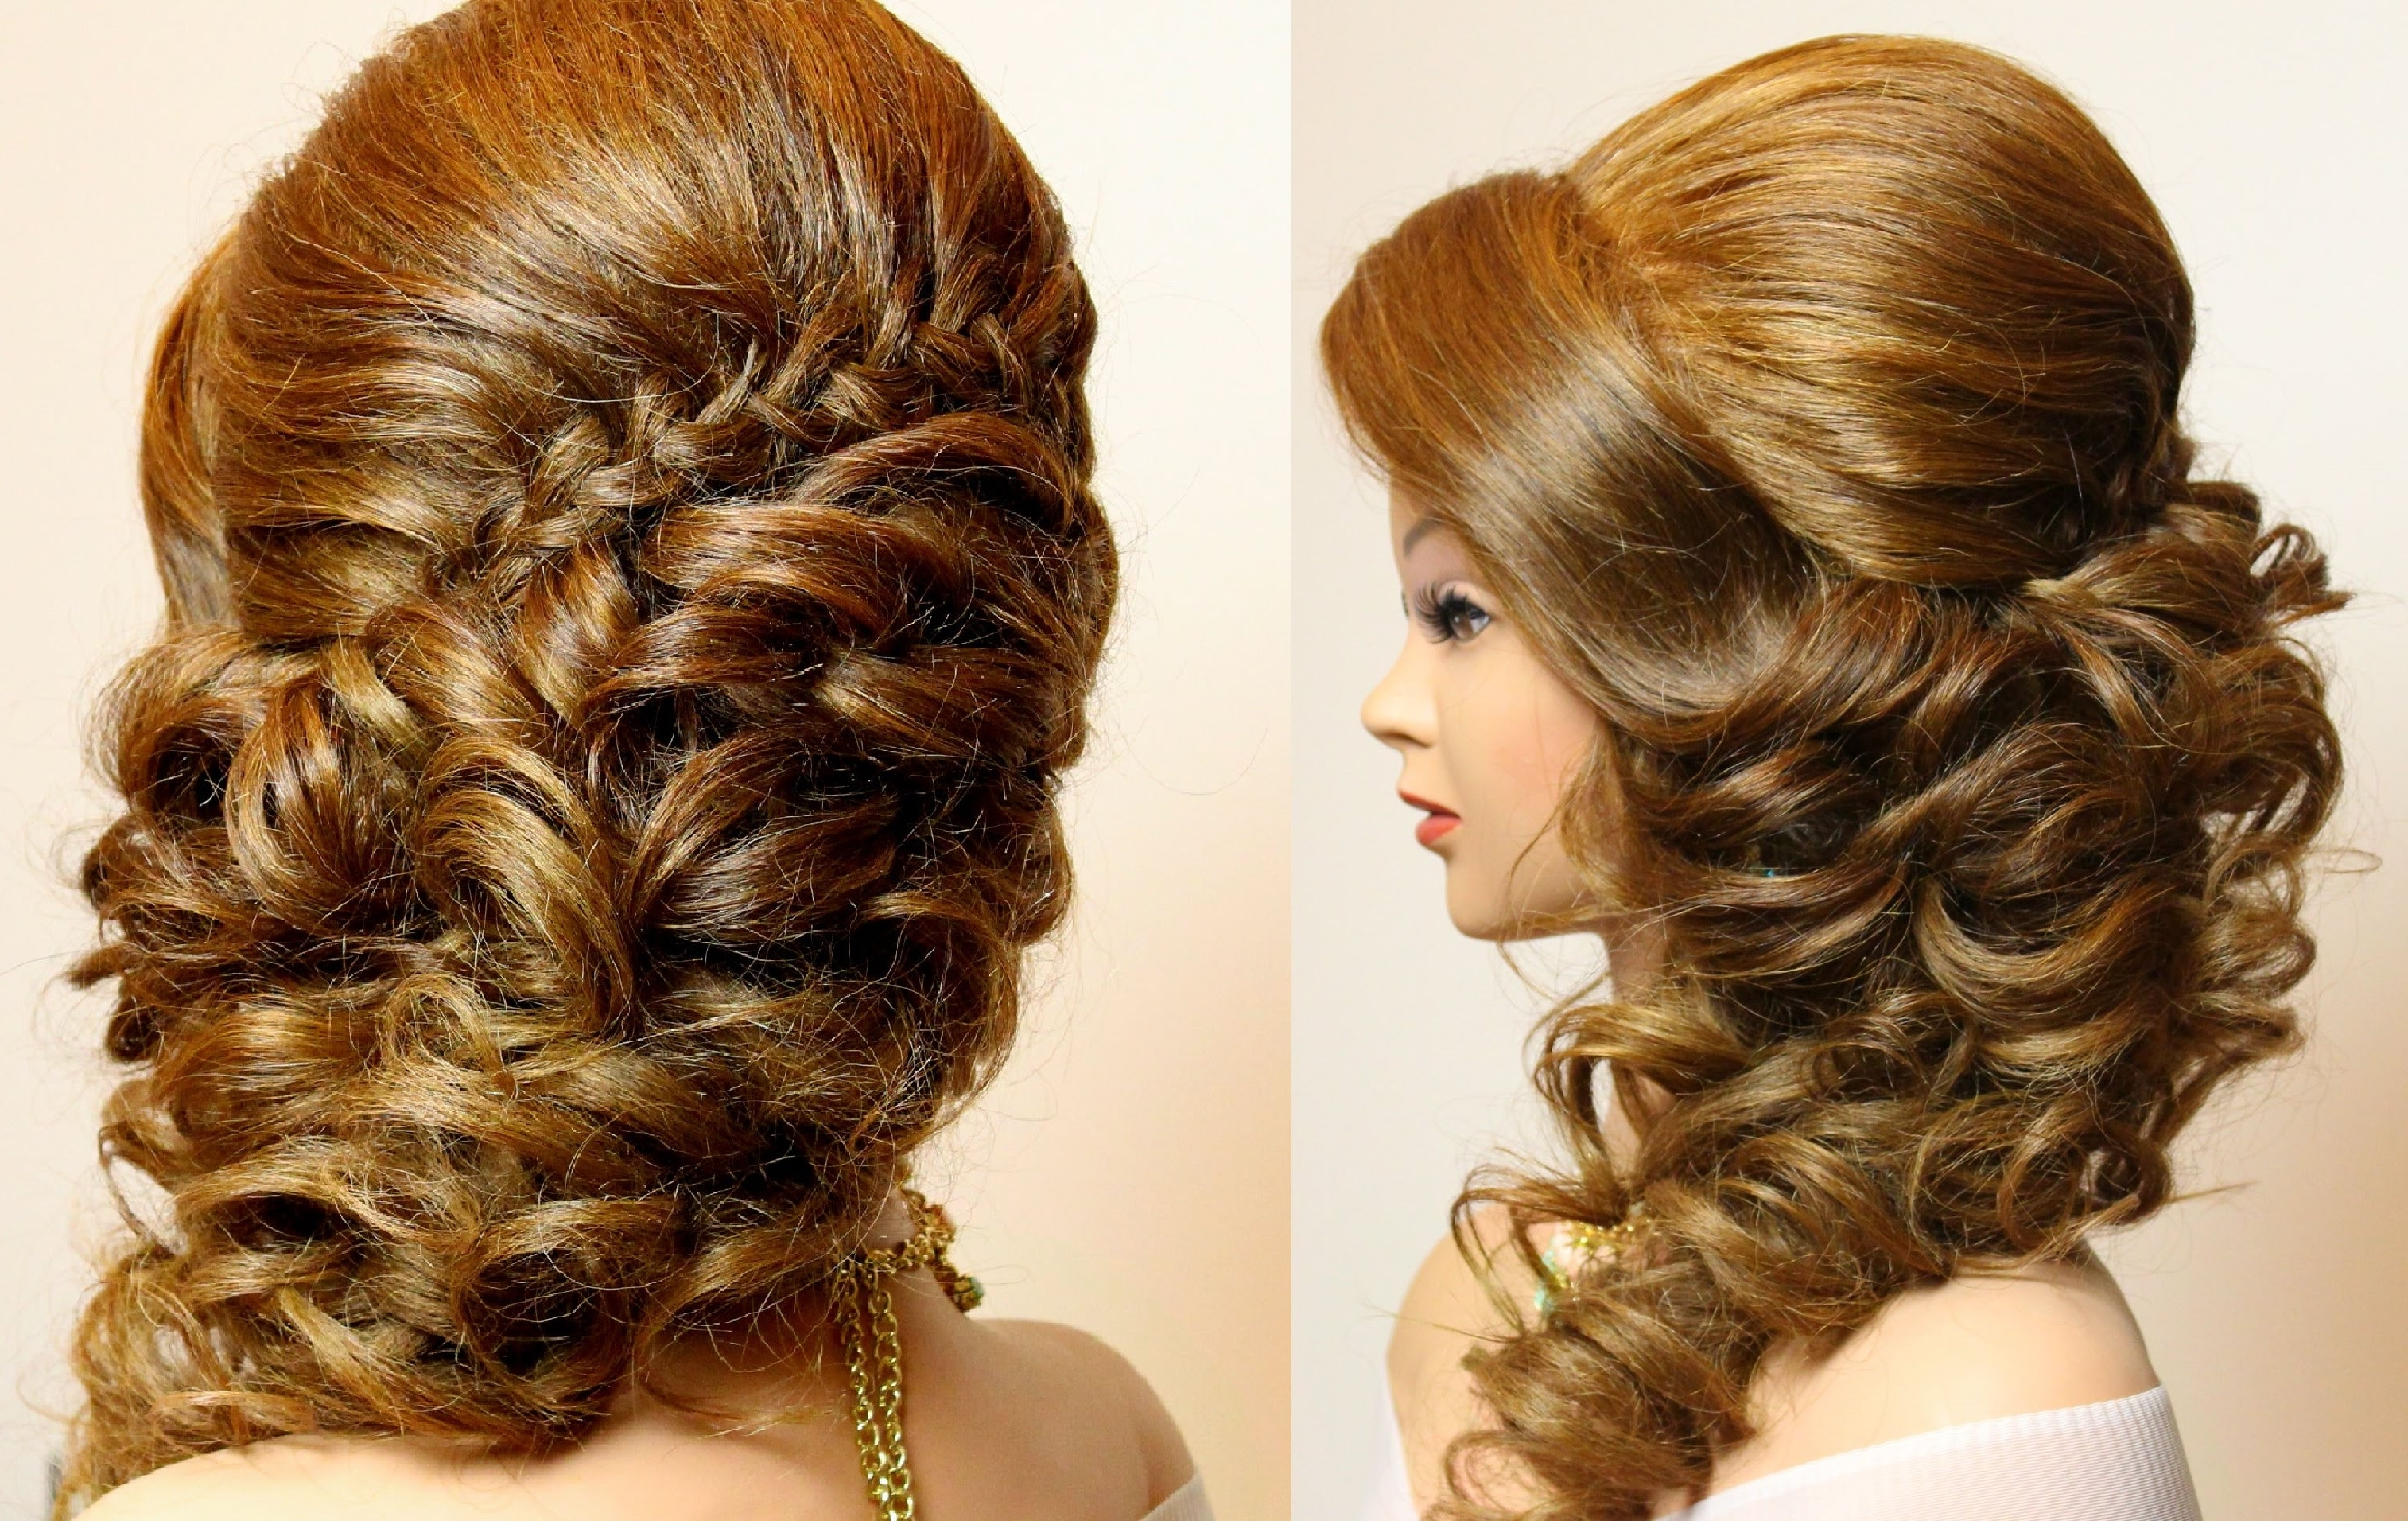 Bridal Hairstyle With Braid And Curls (View 3 of 15)